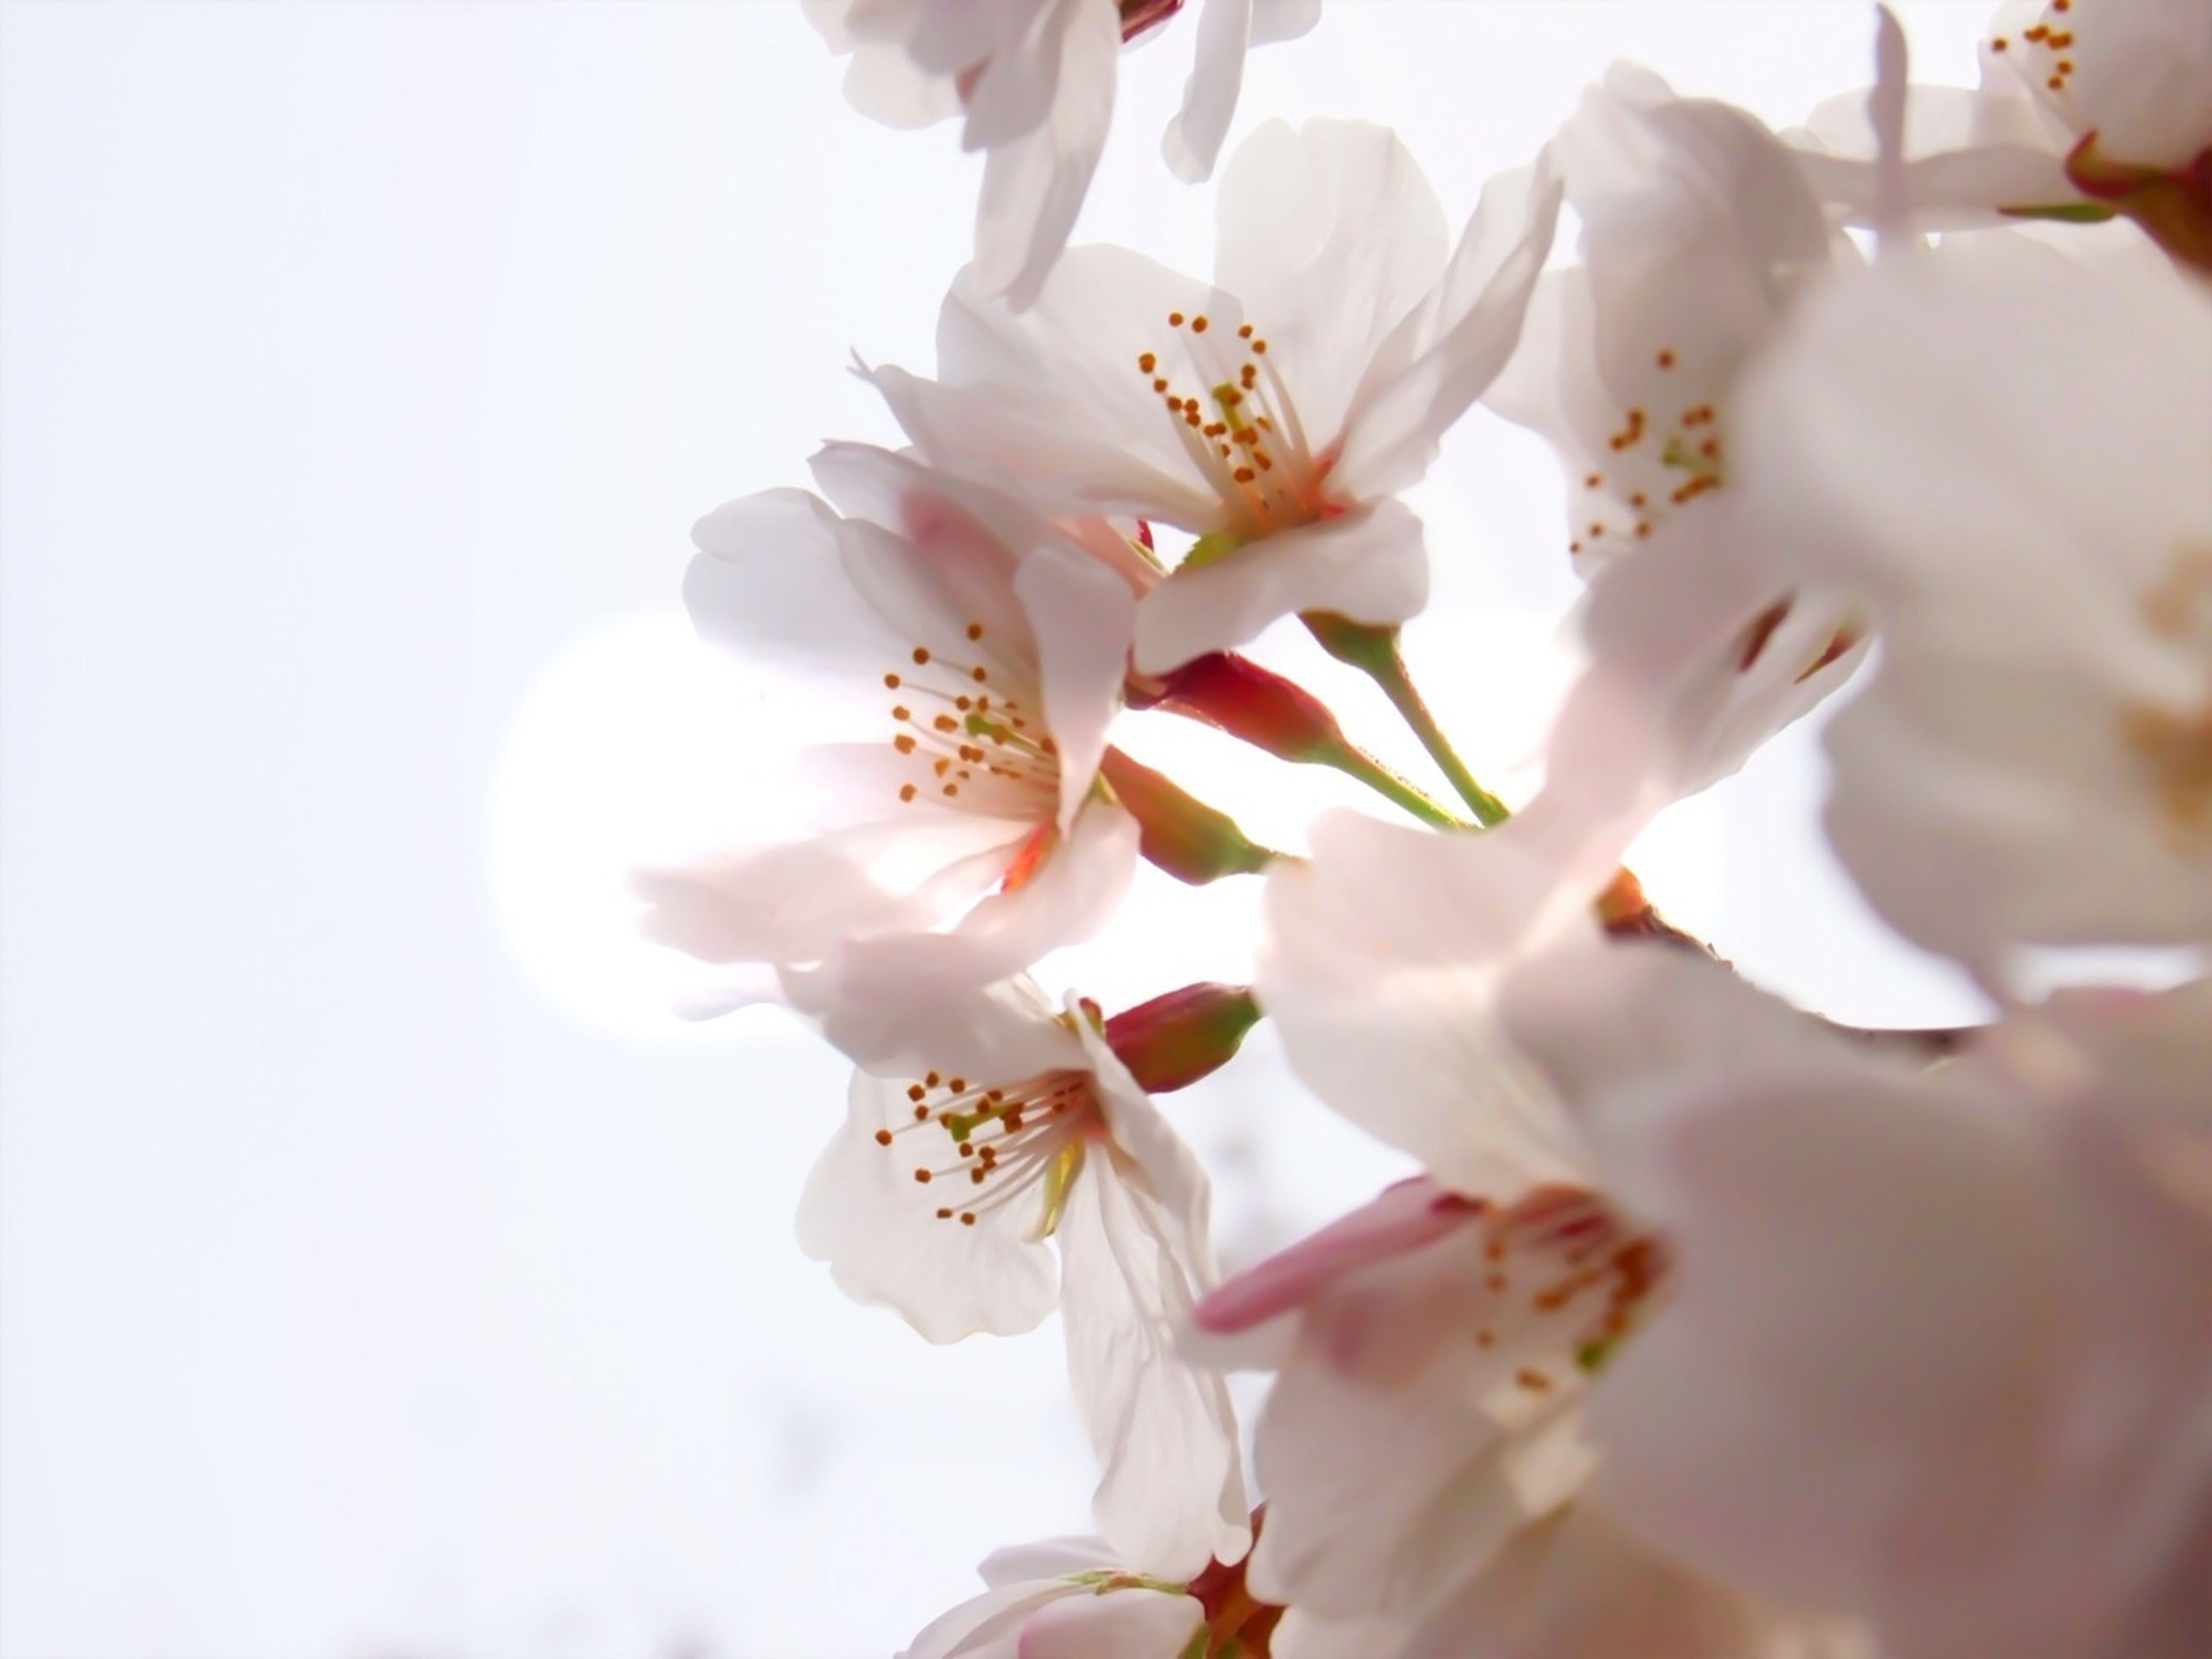 flower, fragility, freshness, petal, beauty in nature, white color, low angle view, nature, growth, focus on foreground, close-up, tree, flower head, cherry blossom, blooming, blossom, branch, day, in bloom, outdoors